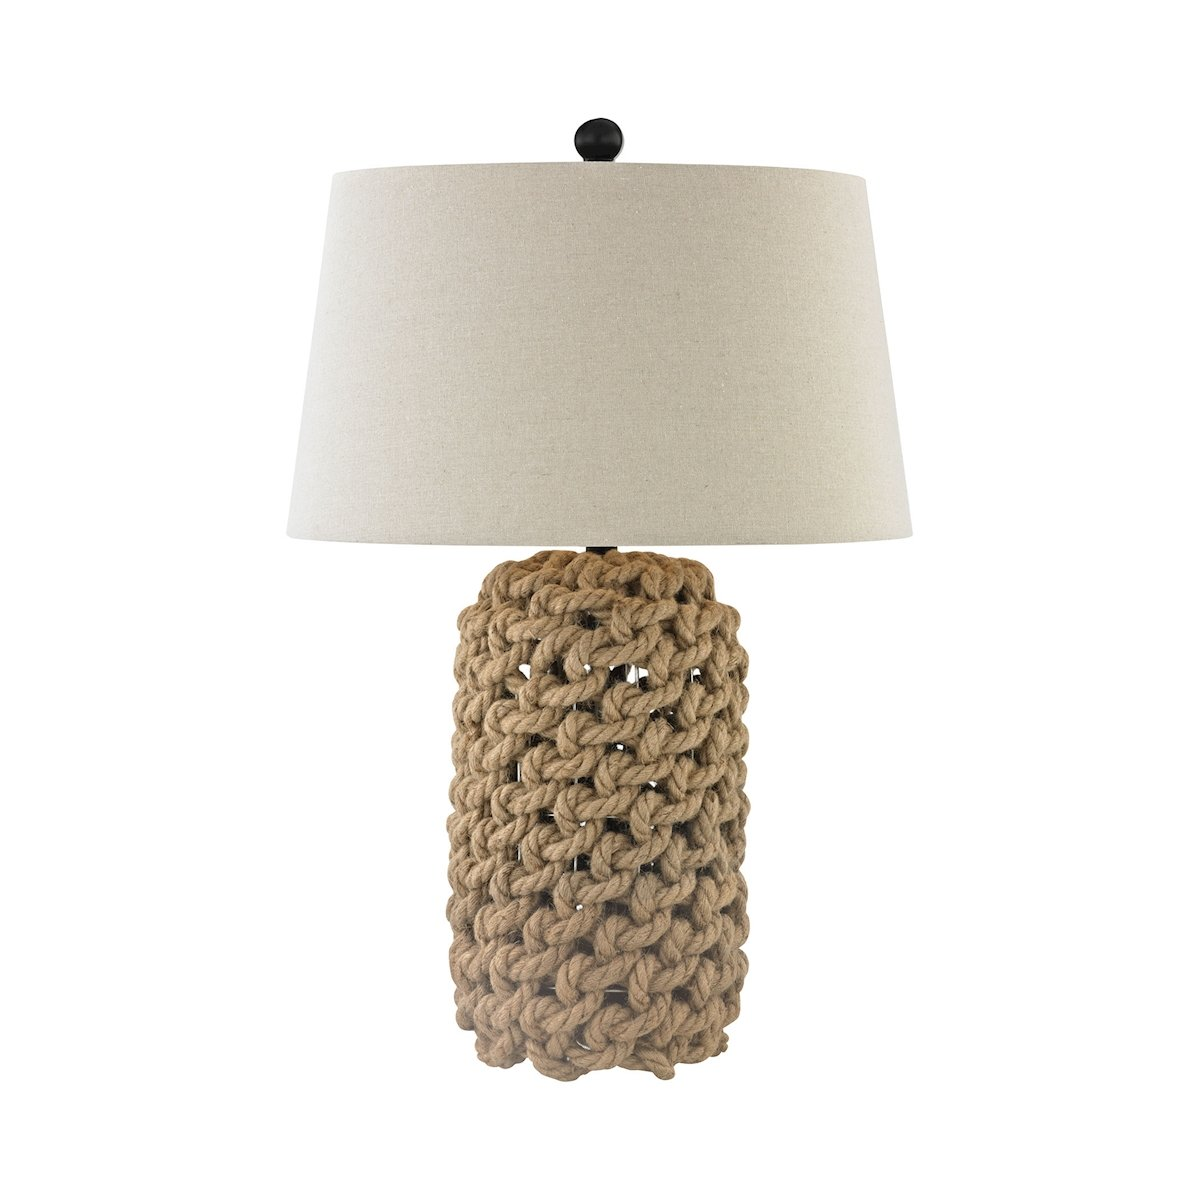 Elk Lighting D3050 Nature Rope And Oil Rubbed Bronze Table Lamp